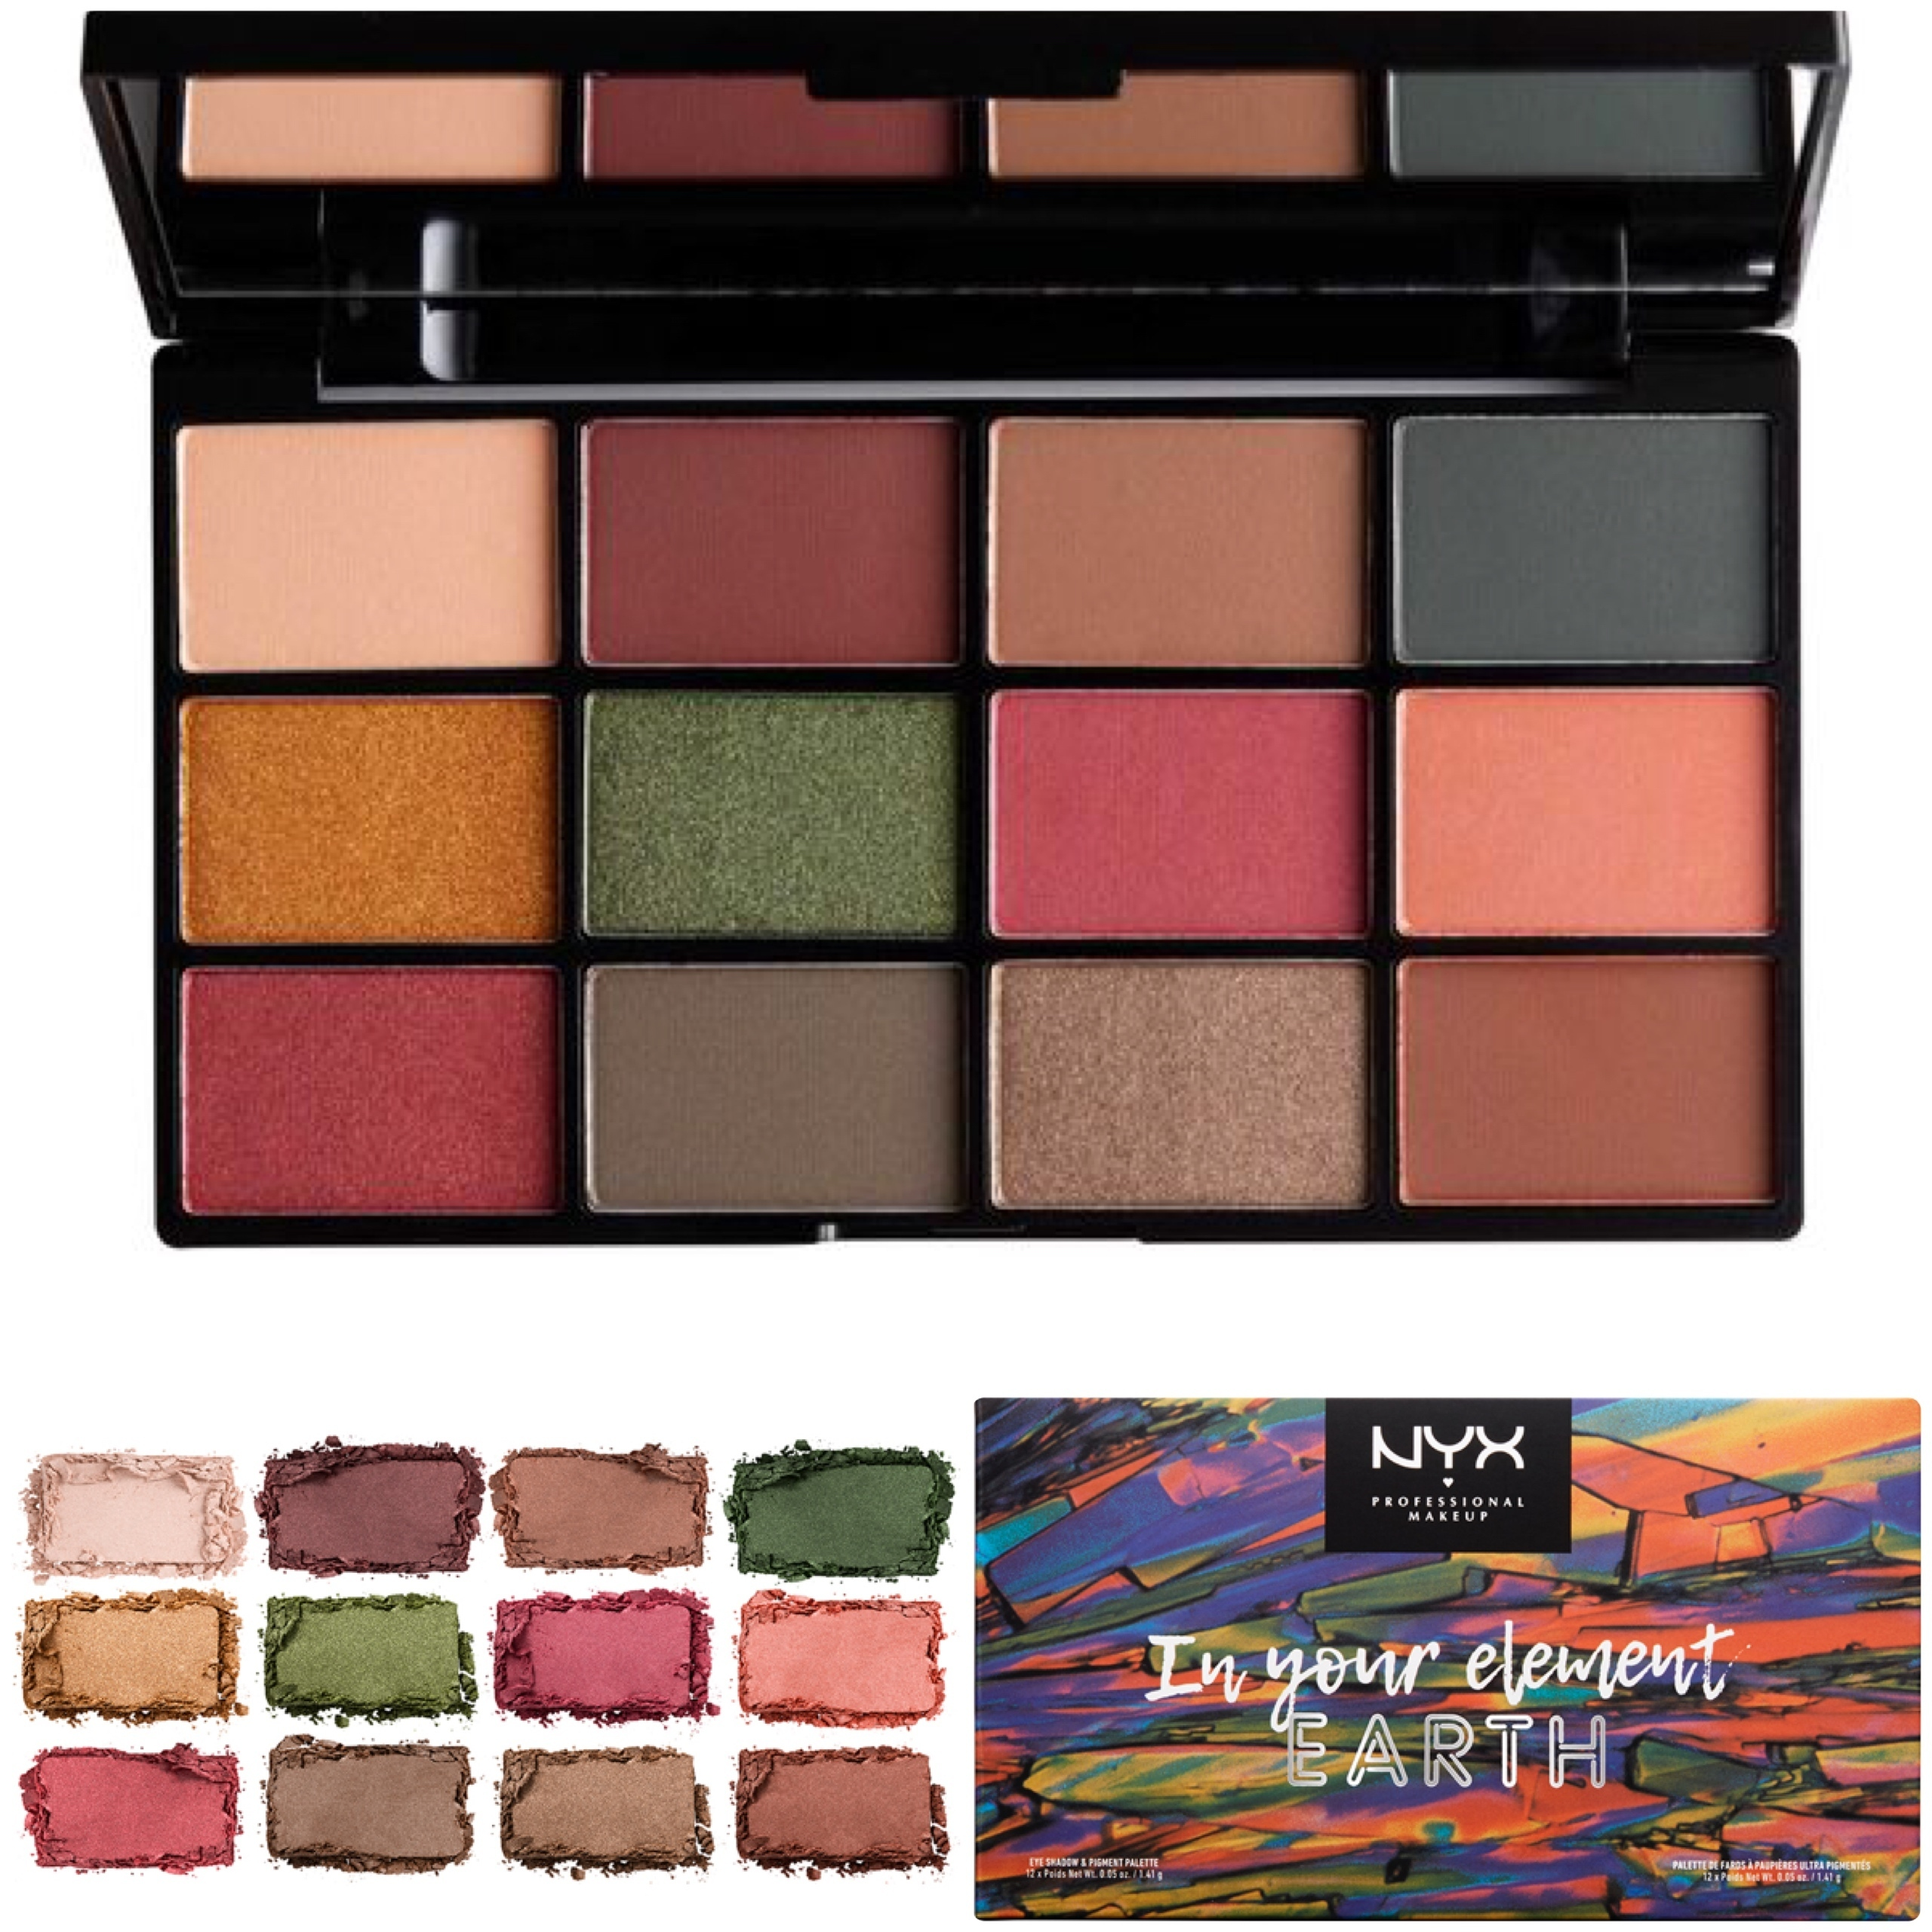 NYX 新作 IN YOUR ELEMENT SHADOW PALETTE 1個 送料込